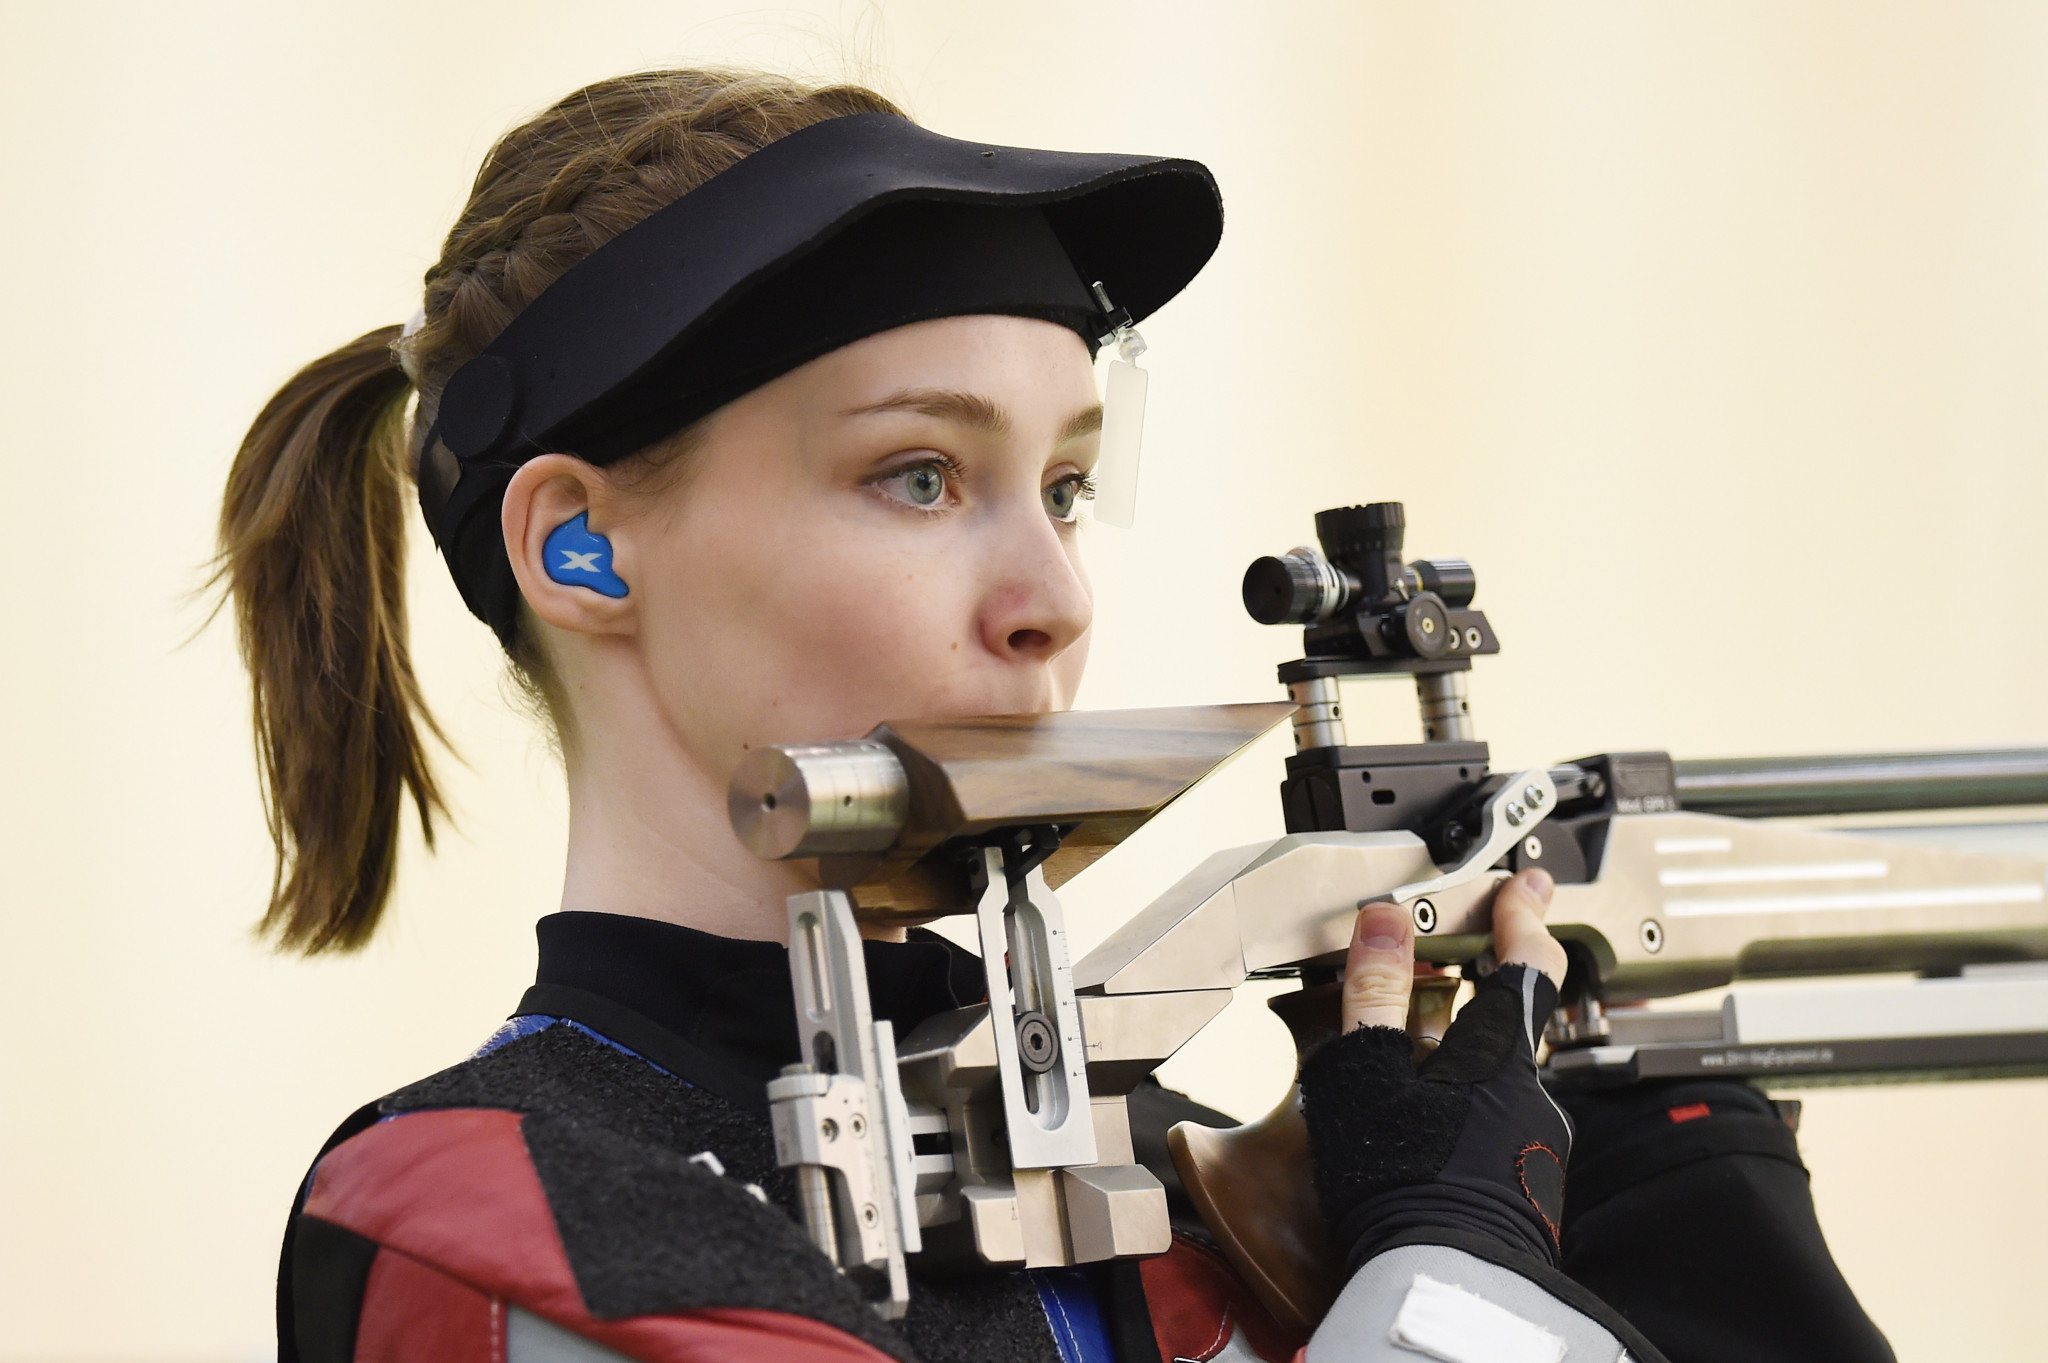 McIntosh wins three positions rifle gold at Oceania and Commonwealth Shooting Federations' Championships